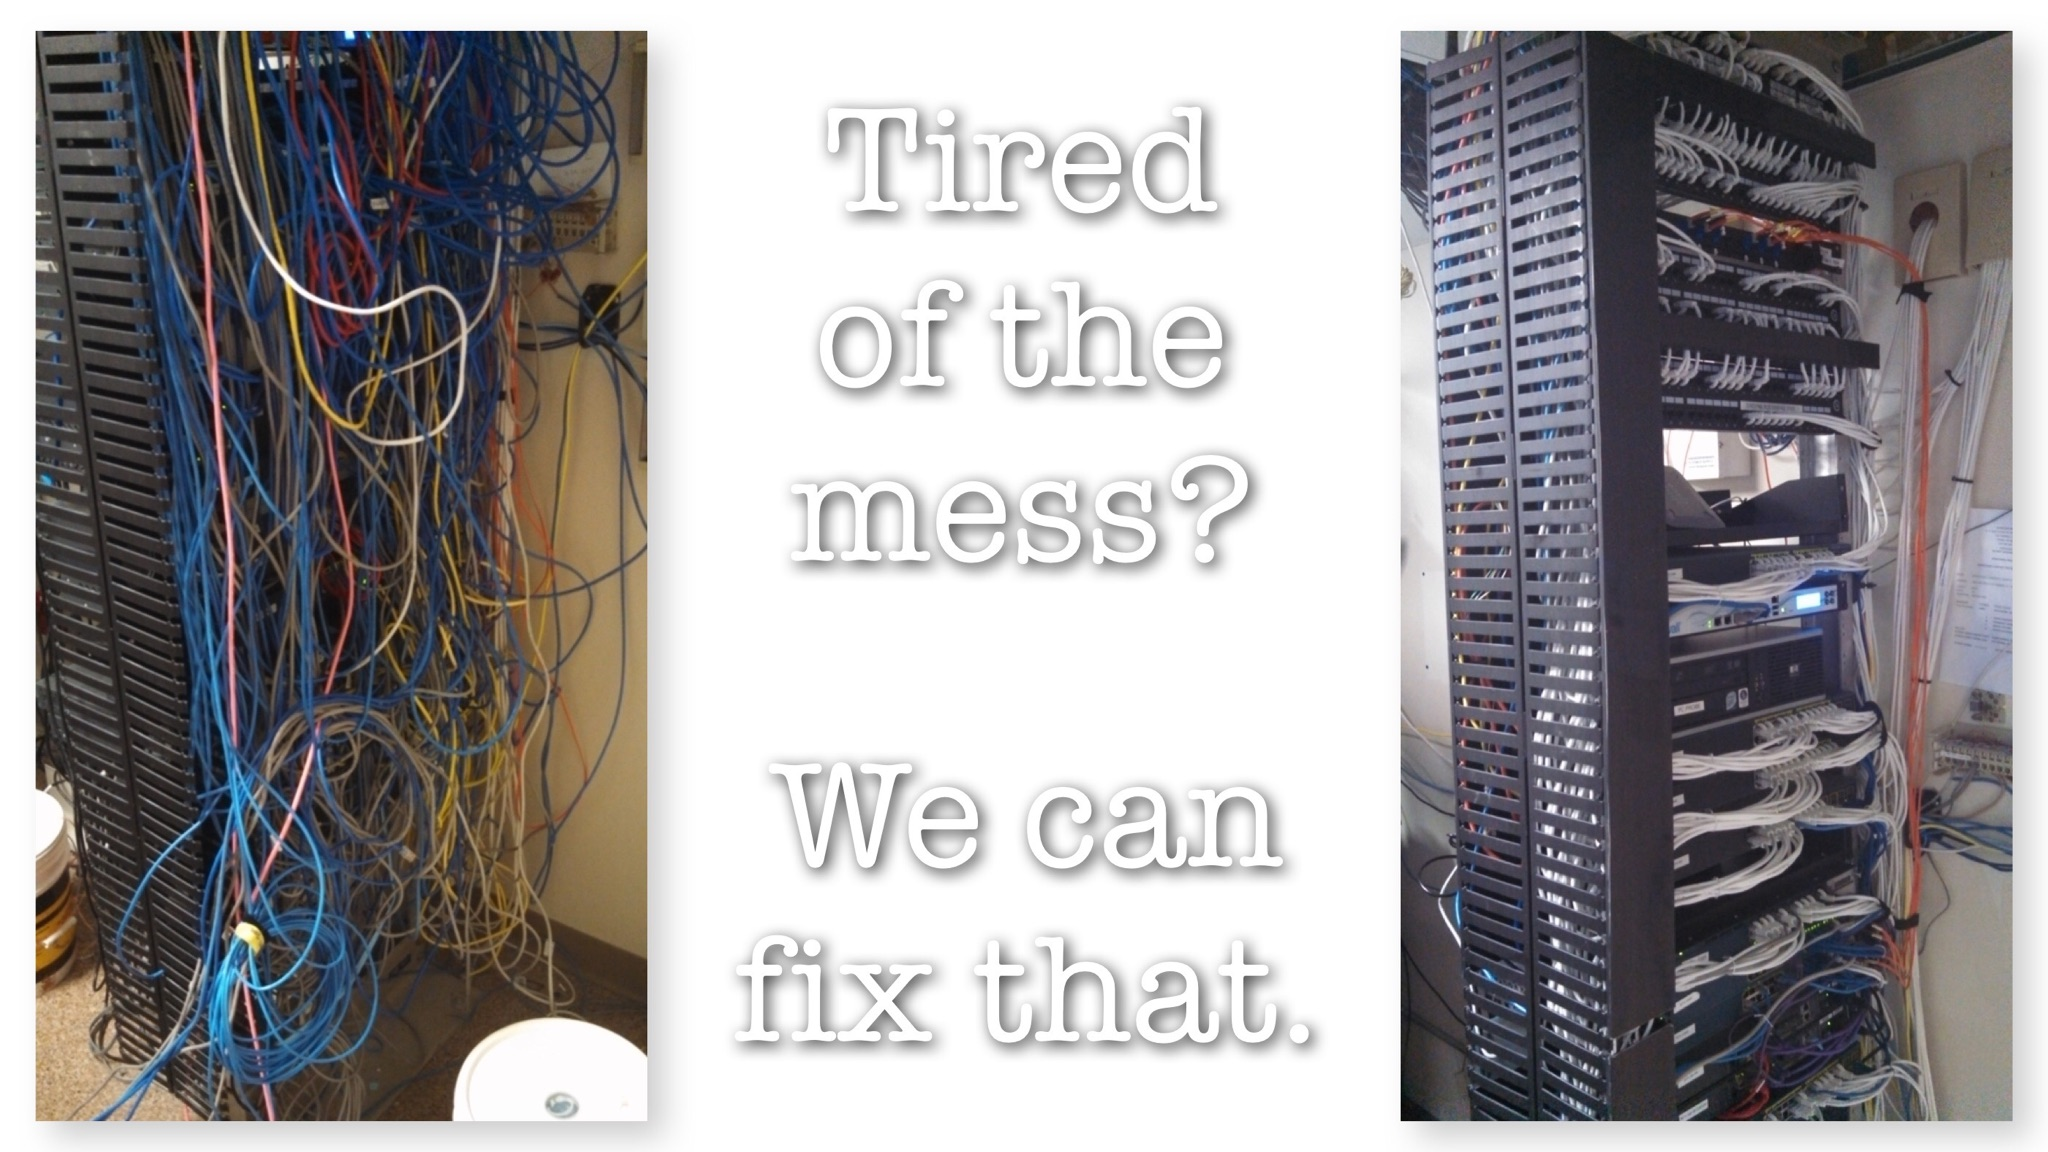 Tired of the mess? We can fix that.